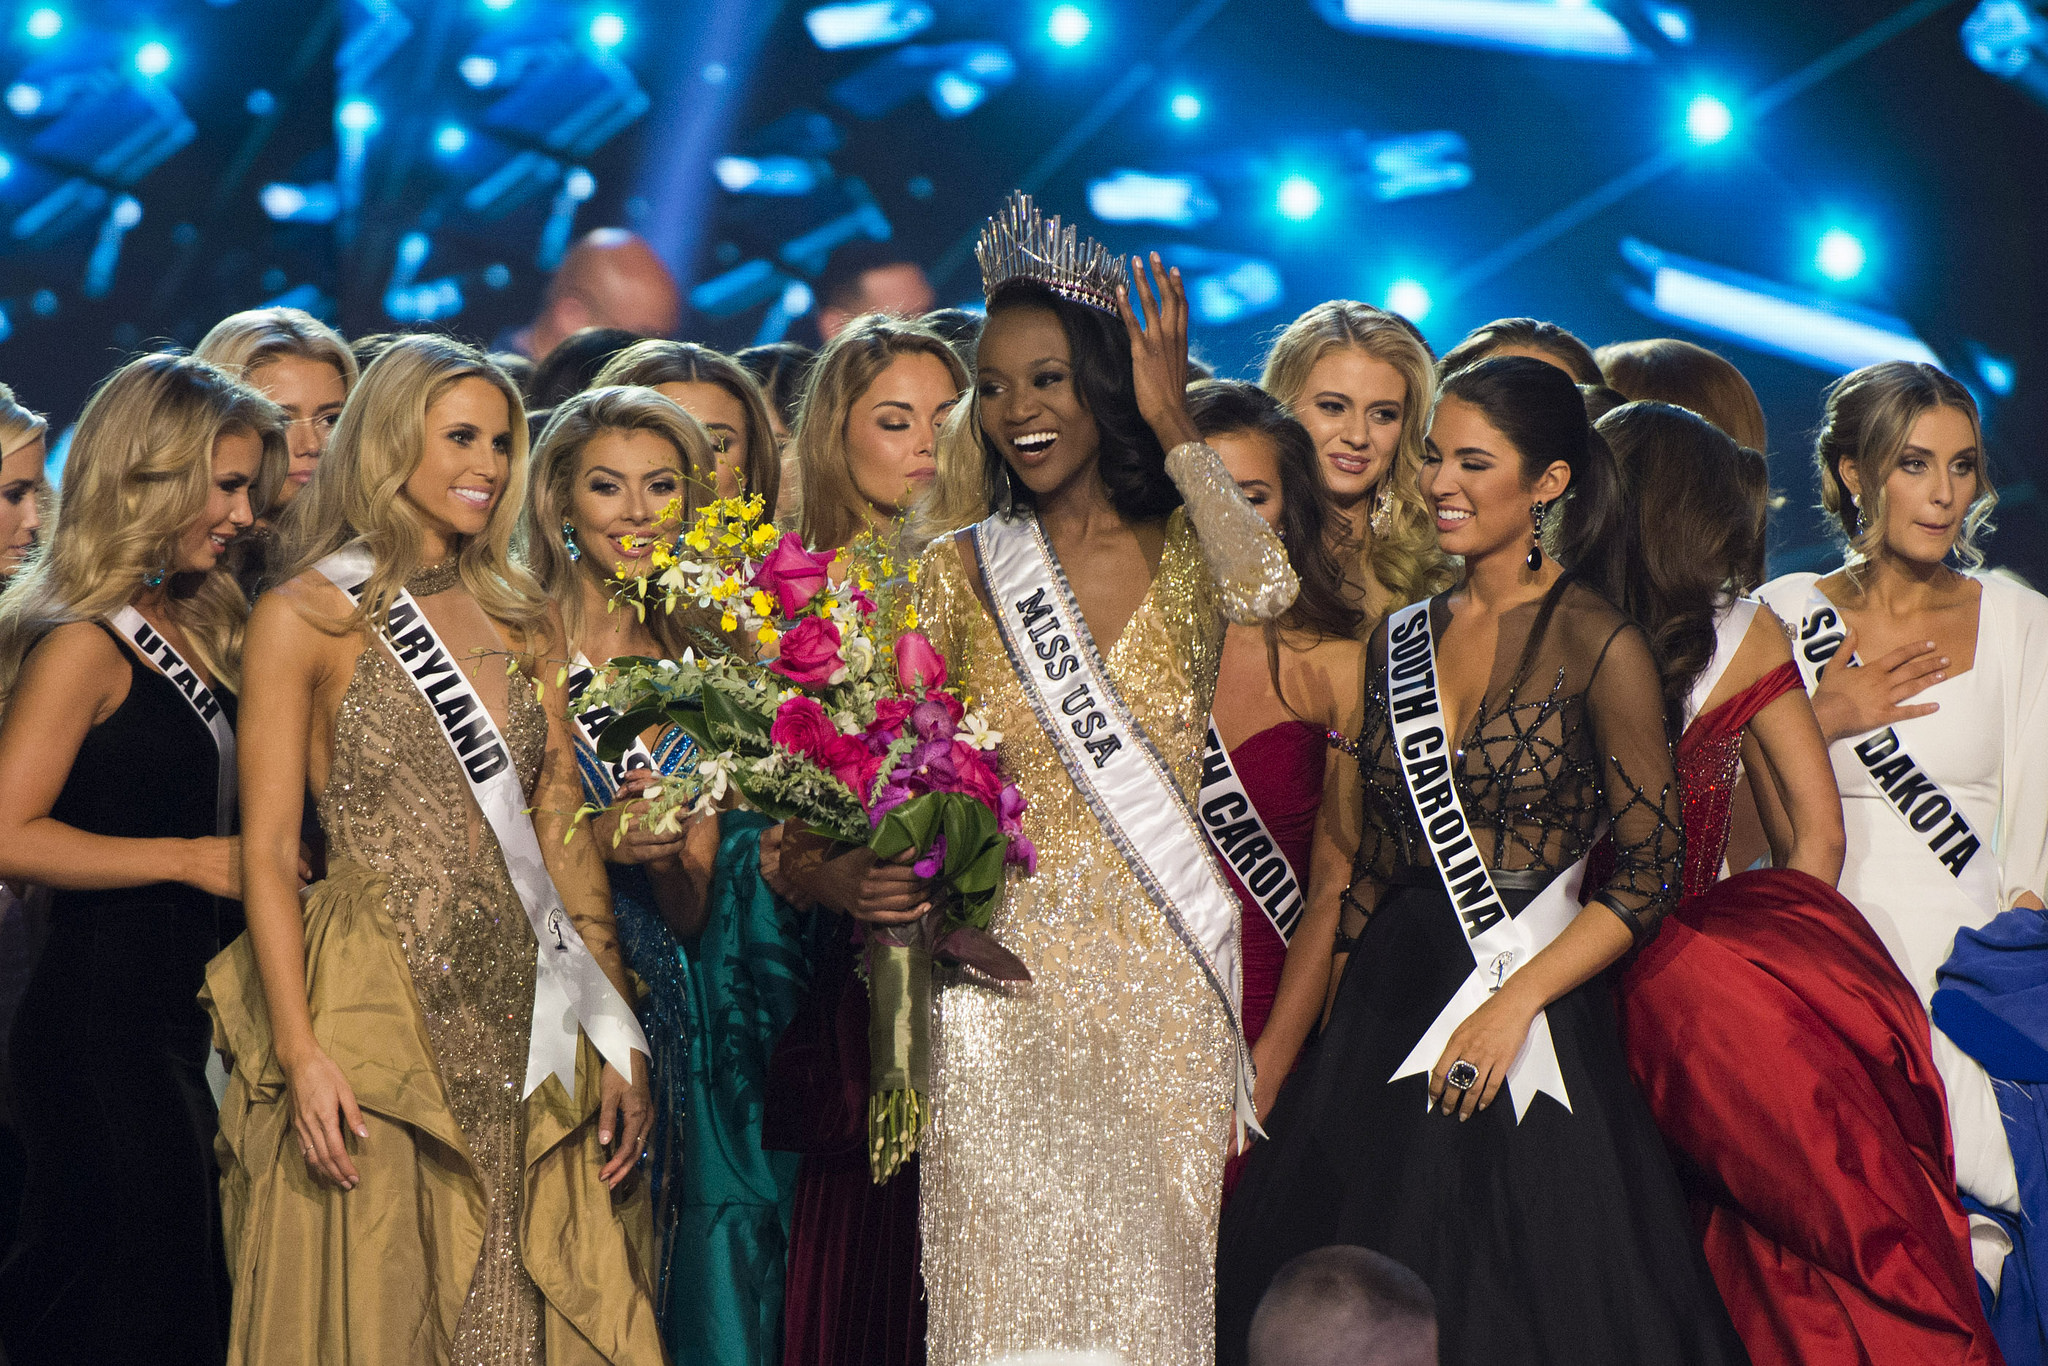 Miss District of Columbia, Deshauna Barber, celebrates with the other contestants after being crowned Miss USA during the Miss USA pageant at T-Mobile Arena in Las Vegas Sunday, June 5, 2016. Jason Ogulnik/Las Vegas Review-Journal